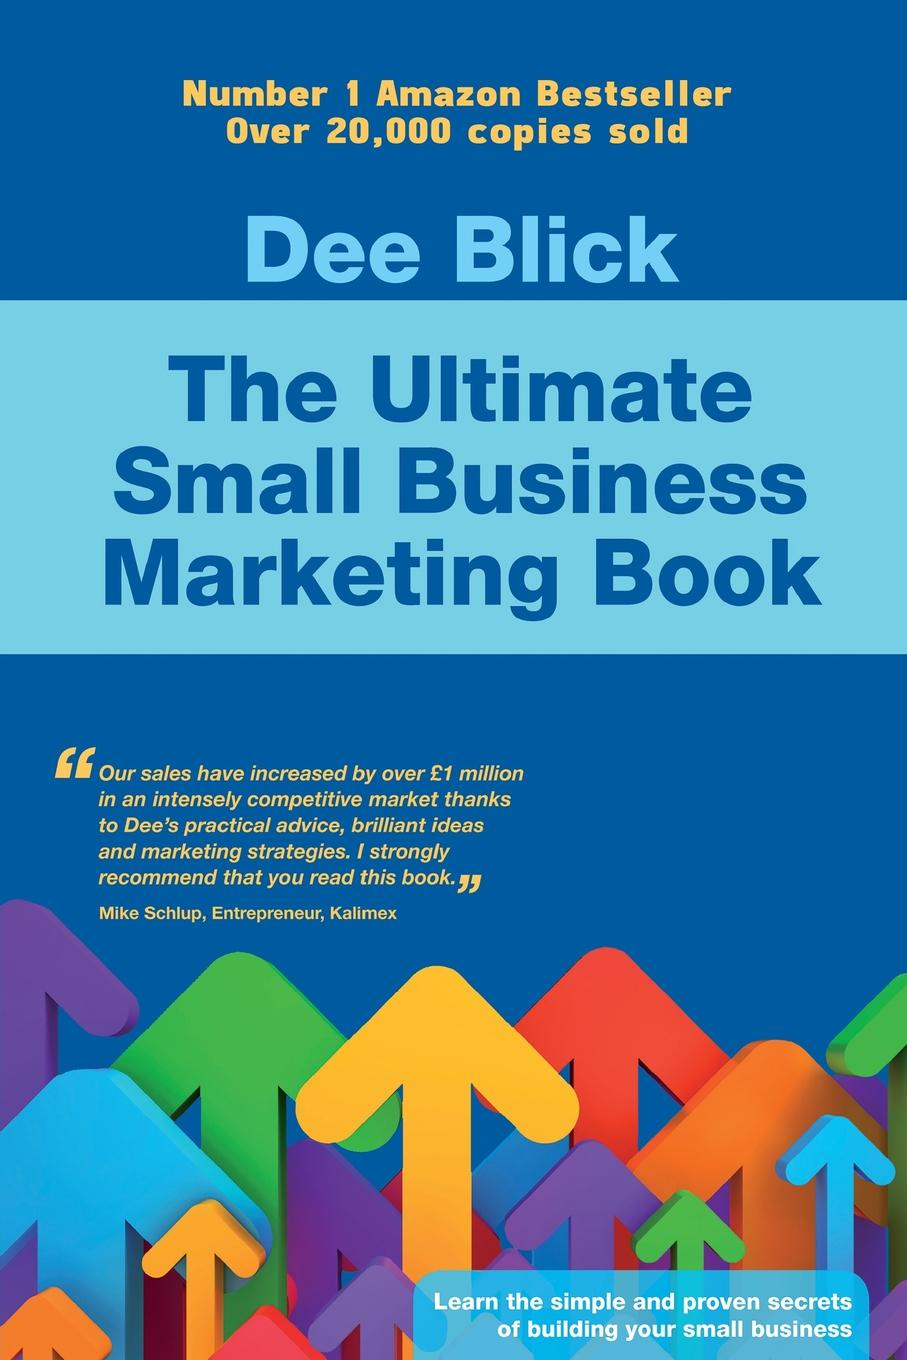 Dee Blick The Ultimate Small Business Marketing Book